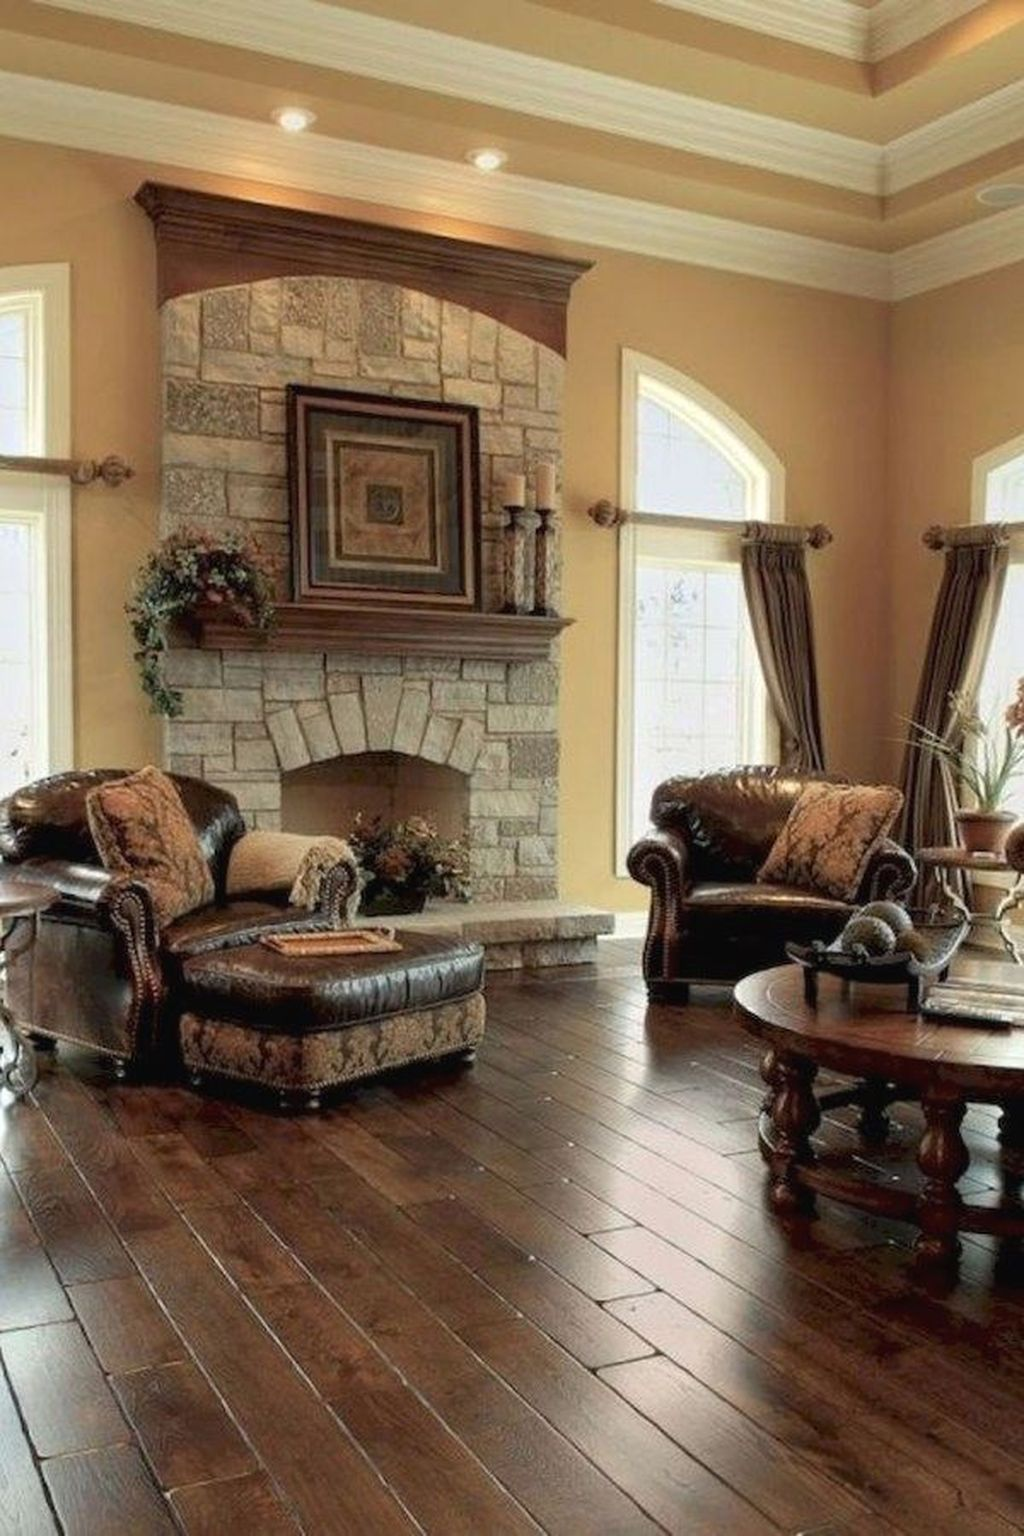 Italian Living Room Design: 32 Stunning Italian Rustic Decor Ideas For Your Living